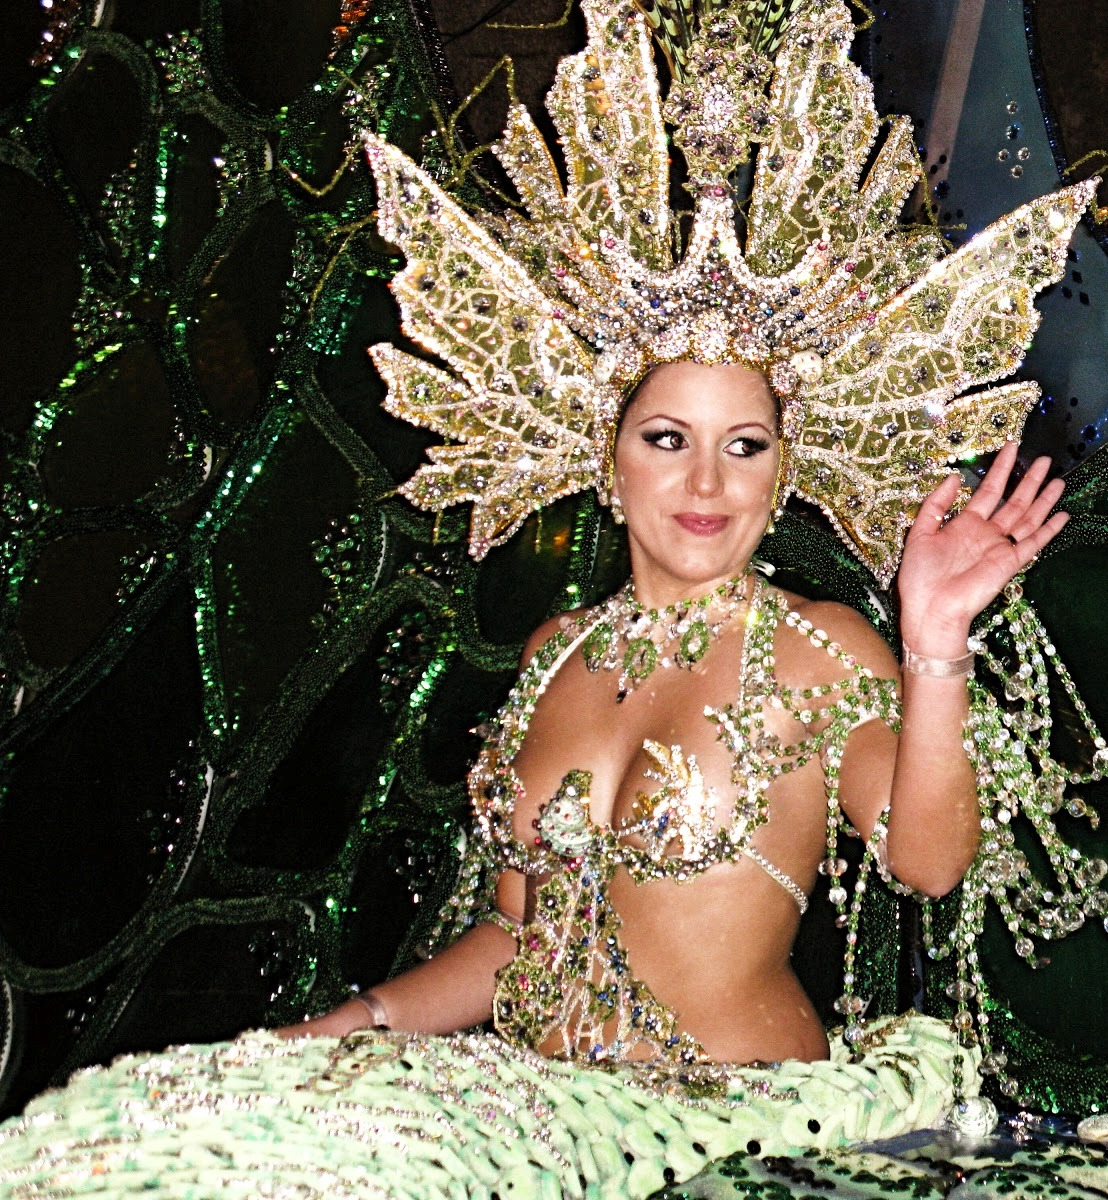 Beautiful Carnaval Princess Drag Queen Woman in Bikini